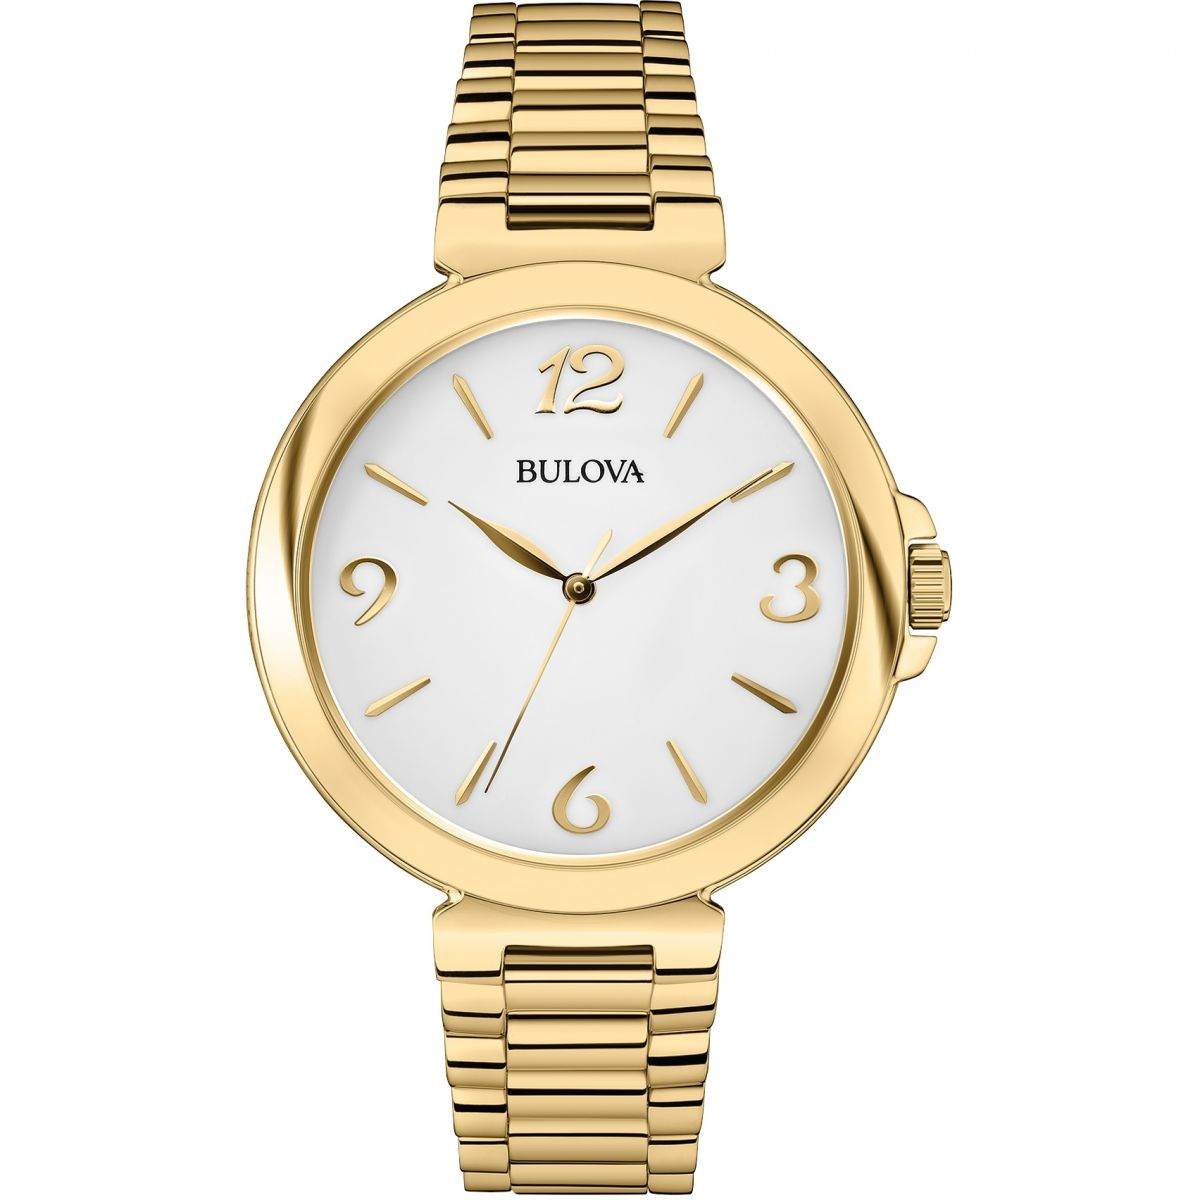 Ladies Bulova Dress Watch (97L139) | WatchShop.com™